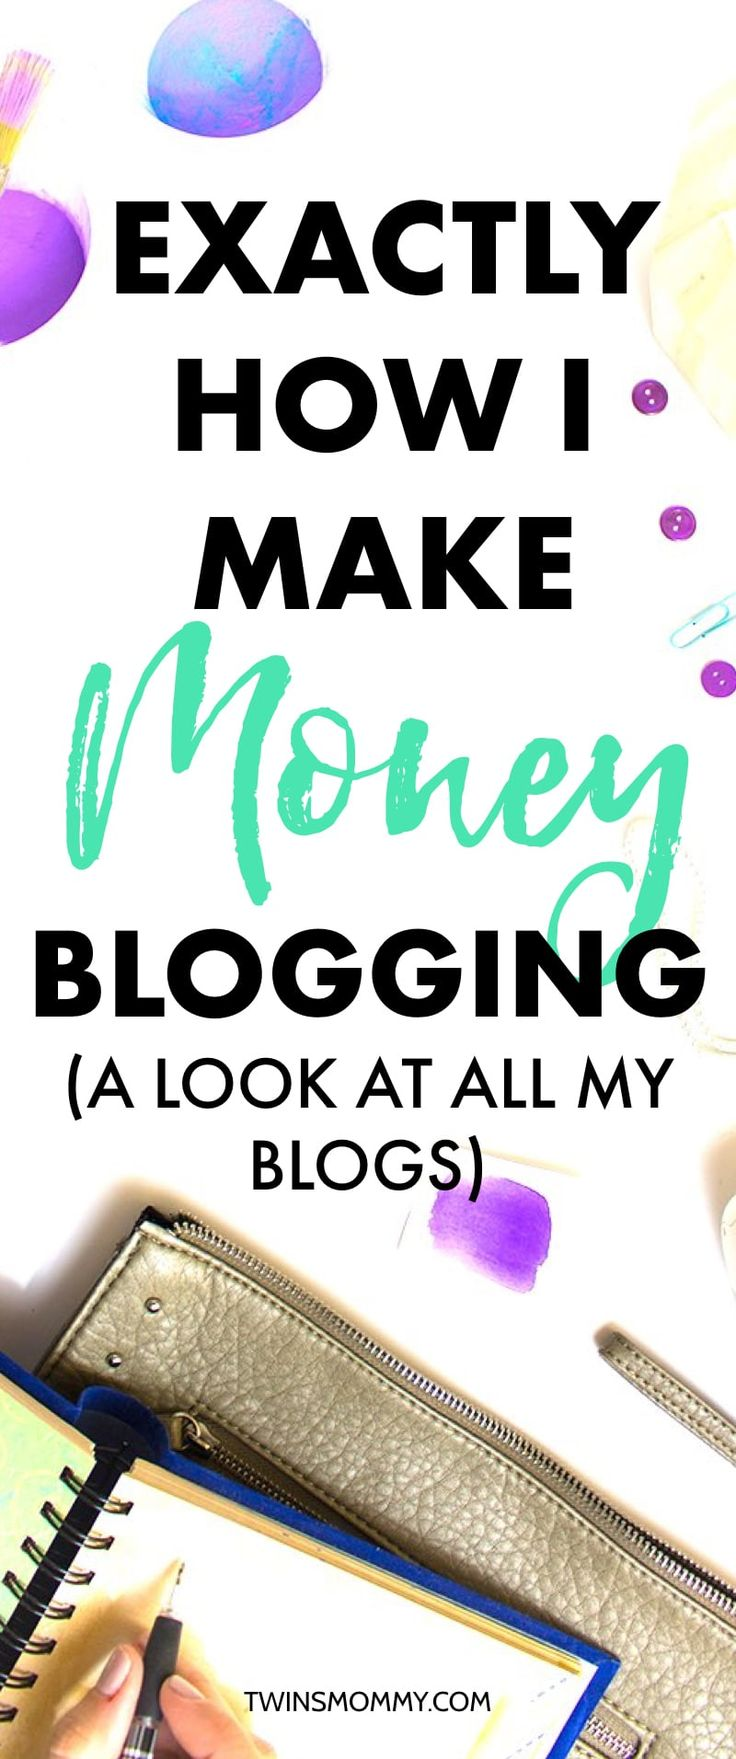 My Blog Sites, How I Make Money And How I Have Time For It All (With Twins in Tow – Borough Kings